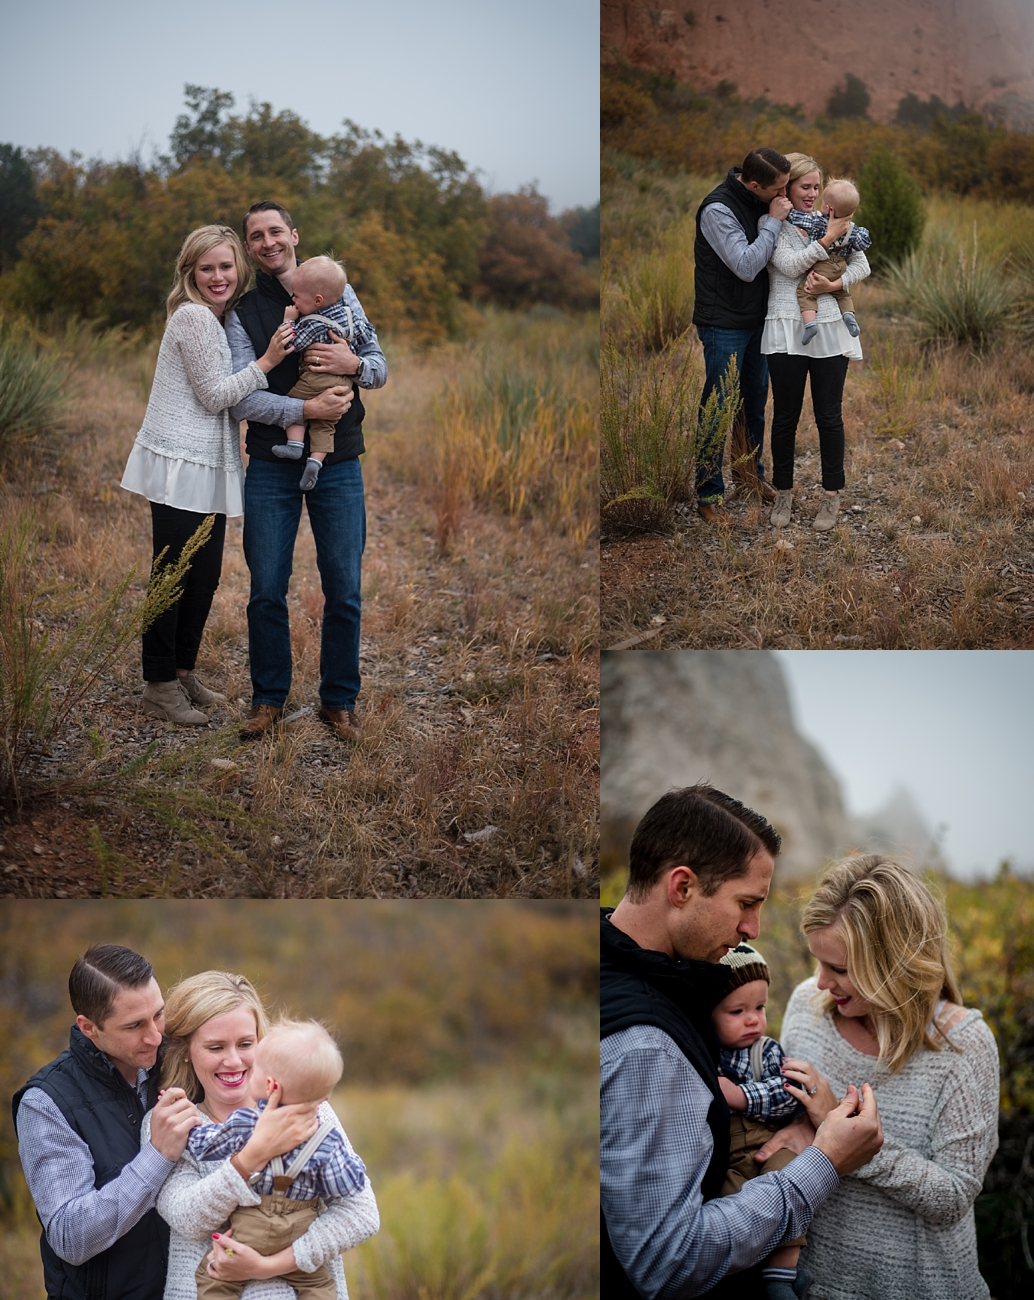 Family | Sweetie Photo | Colorado Wedding Photography